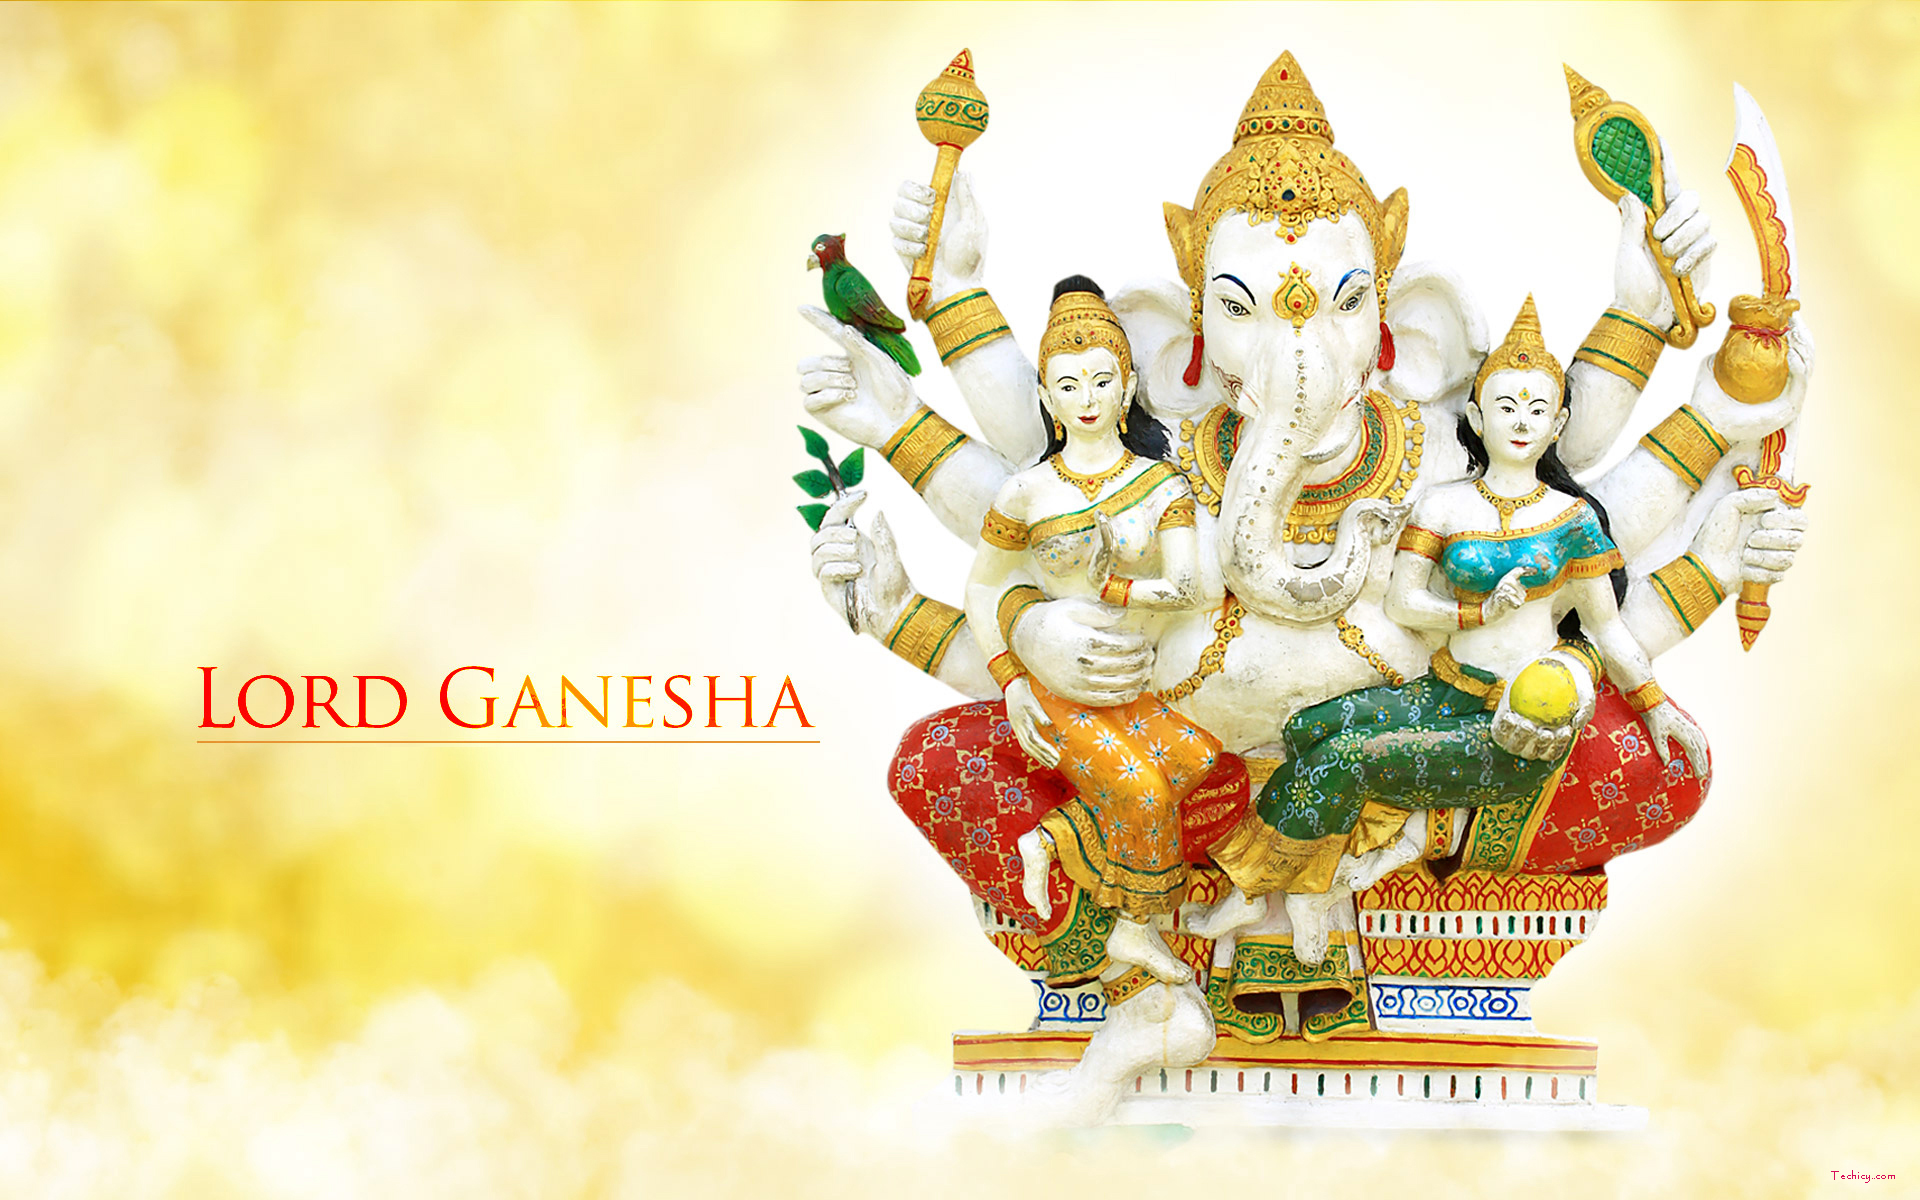 Ganesh Chaturthi 2018 Wallpapers